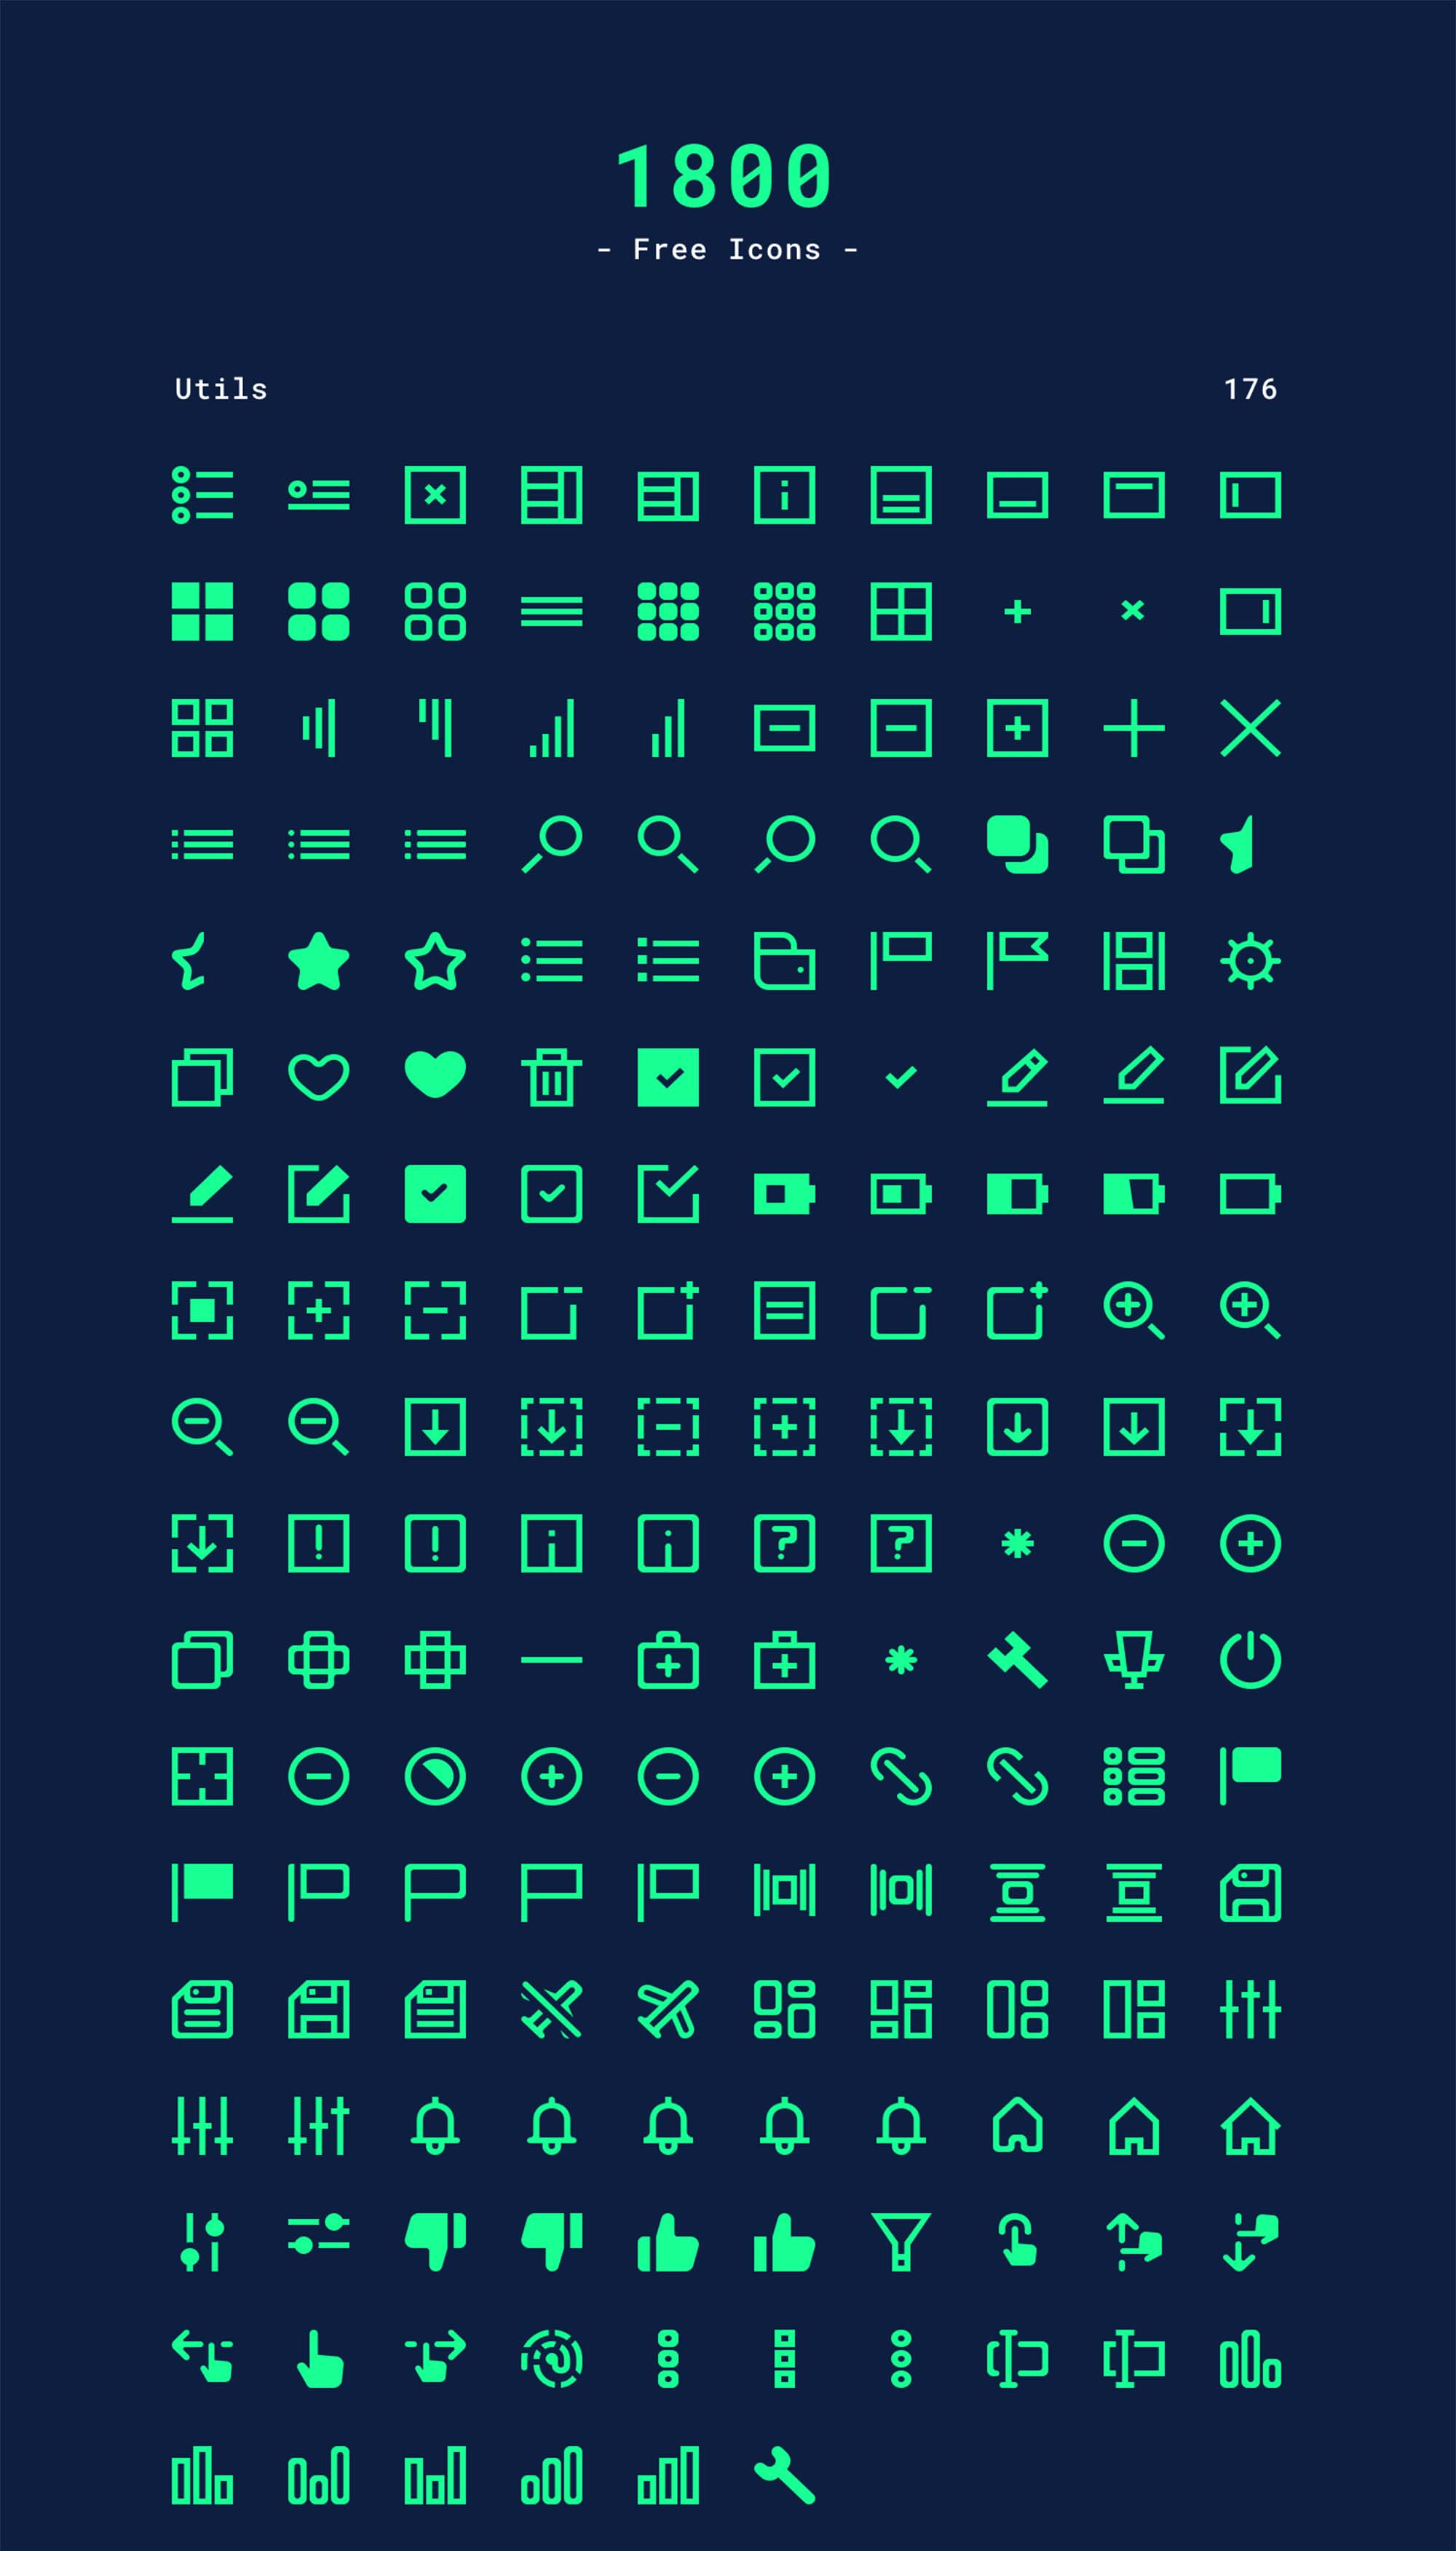 Utils Icons